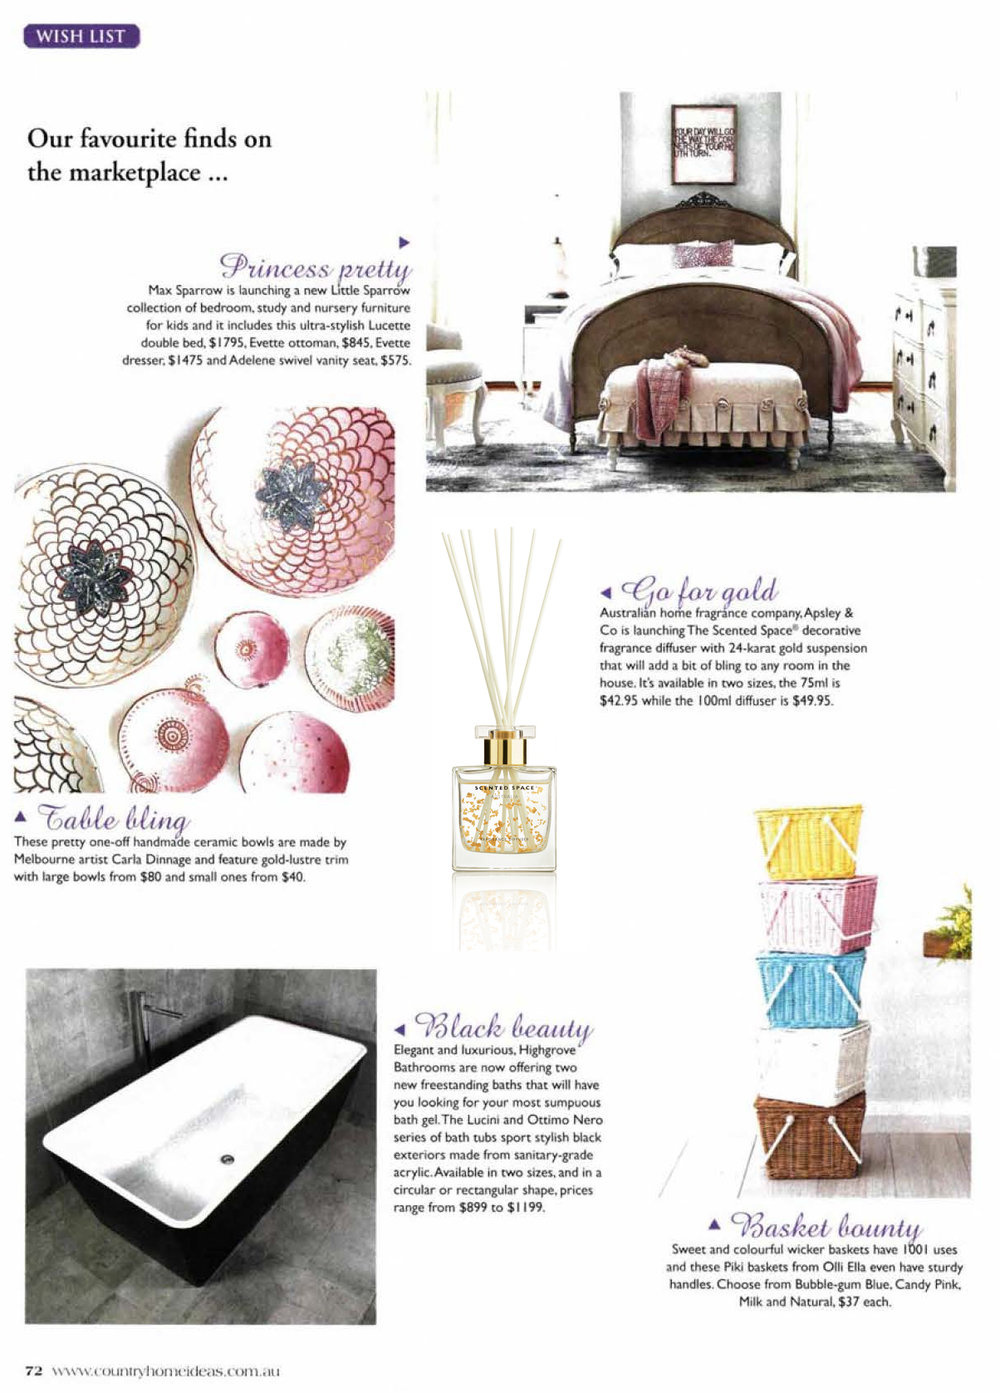 COUNTRY HOME IDEAS MAG.jpg